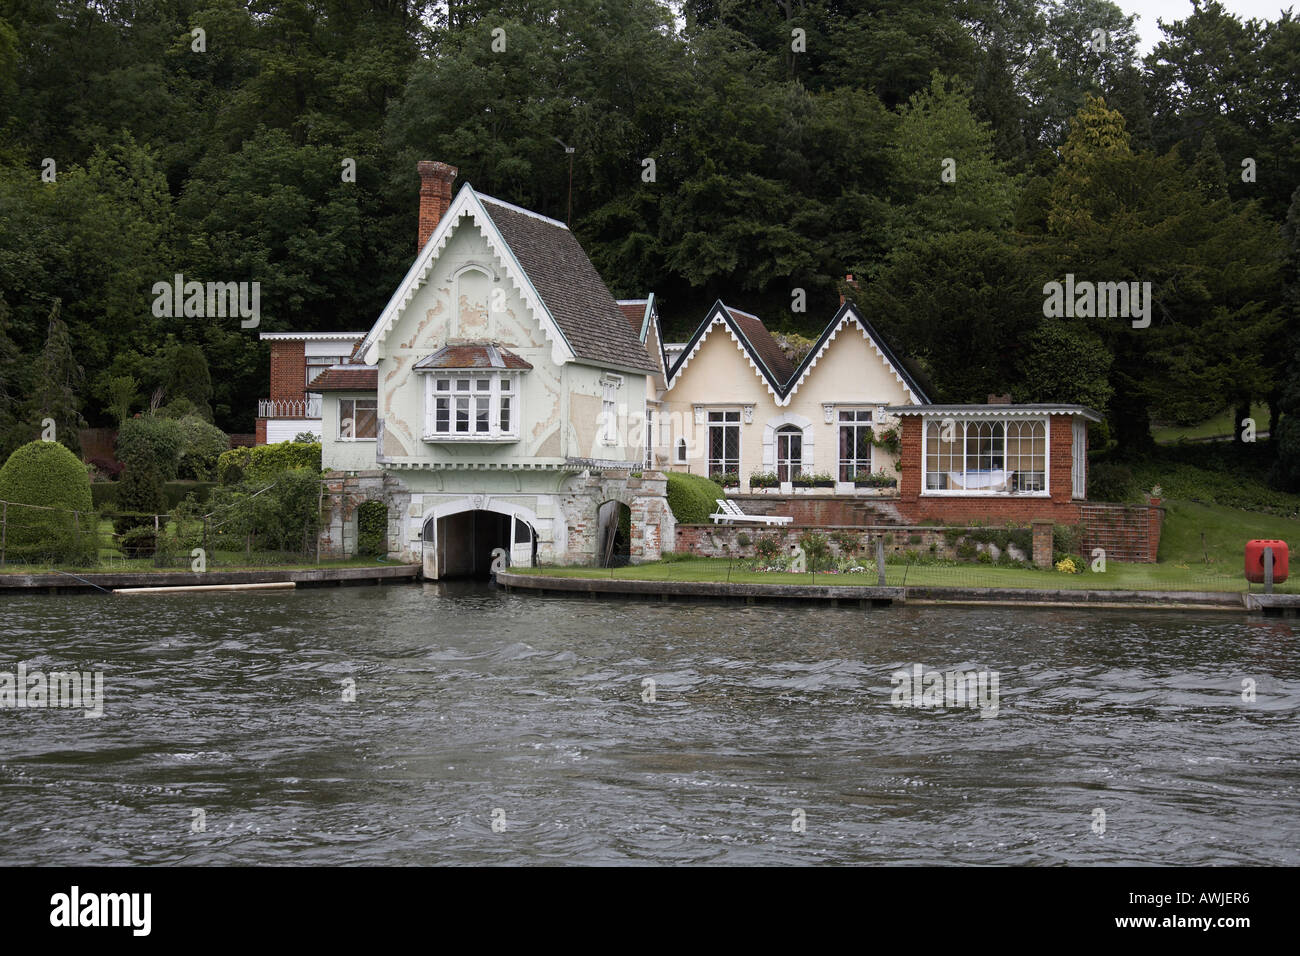 Beautiful Traditional Riverside Residential House Or Home